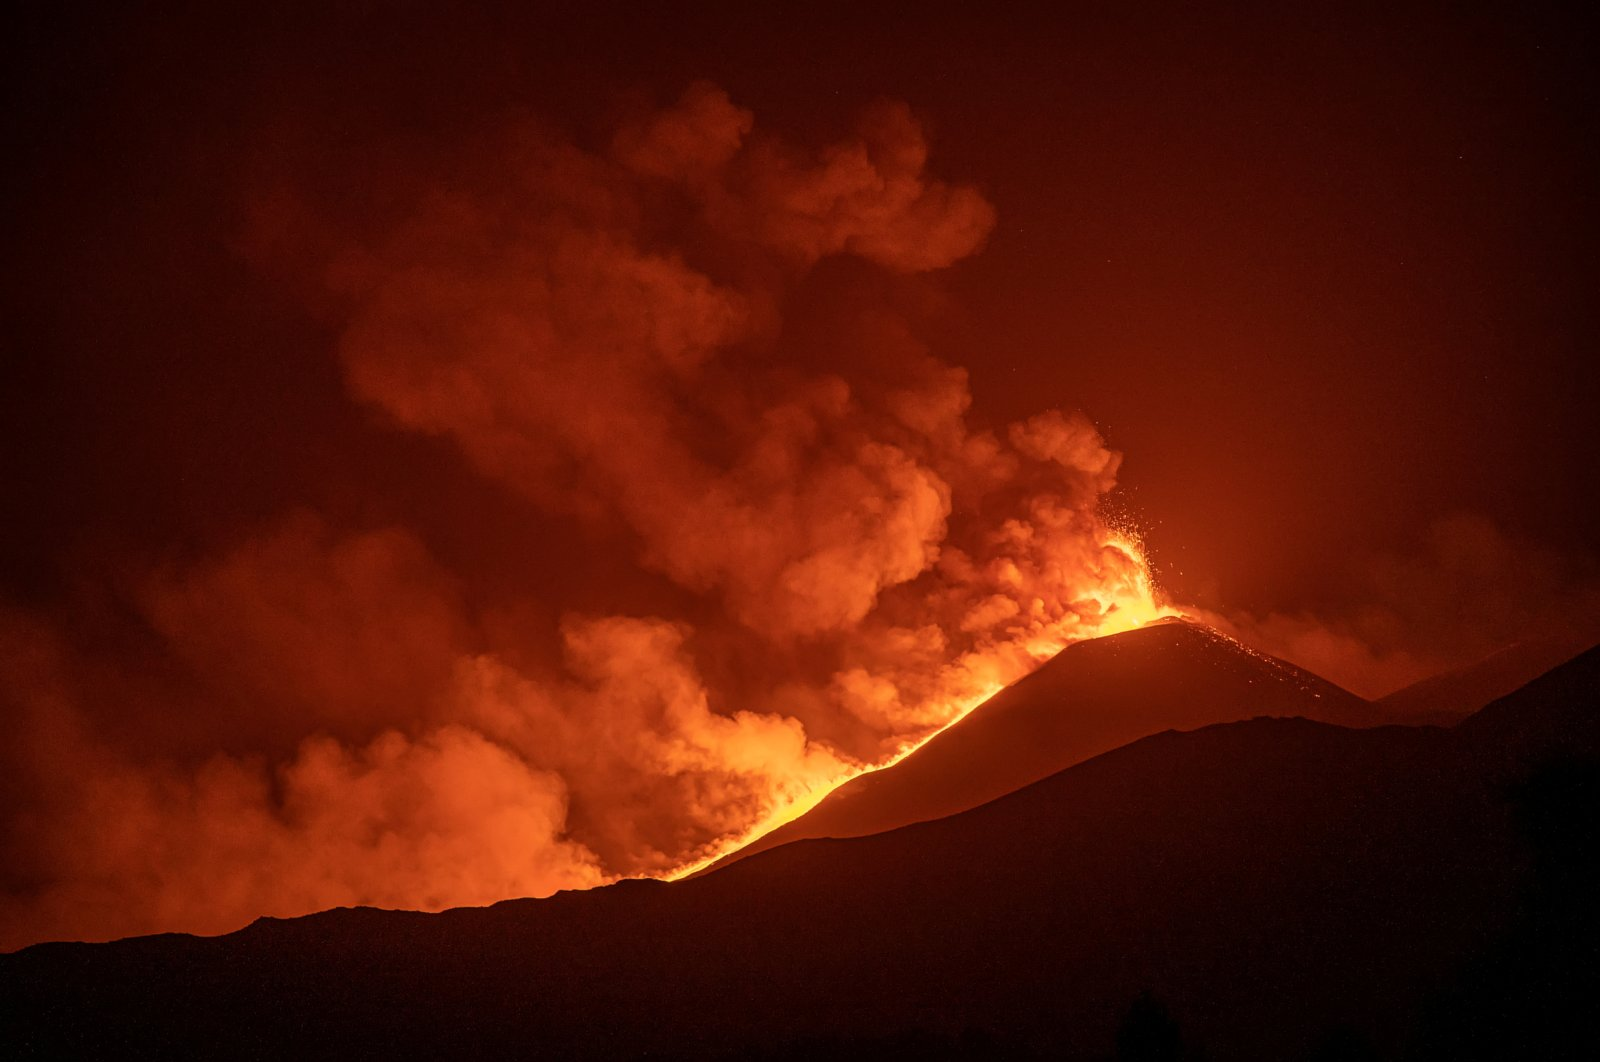 Streams of red hot lava flow as Mount Etna, Europe's most active volcano, erupts as seen from Rifugio Citelli, Italy, Aug. 9, 2021. (Etna Walk/Marco Restivo/Handout via Reuters)